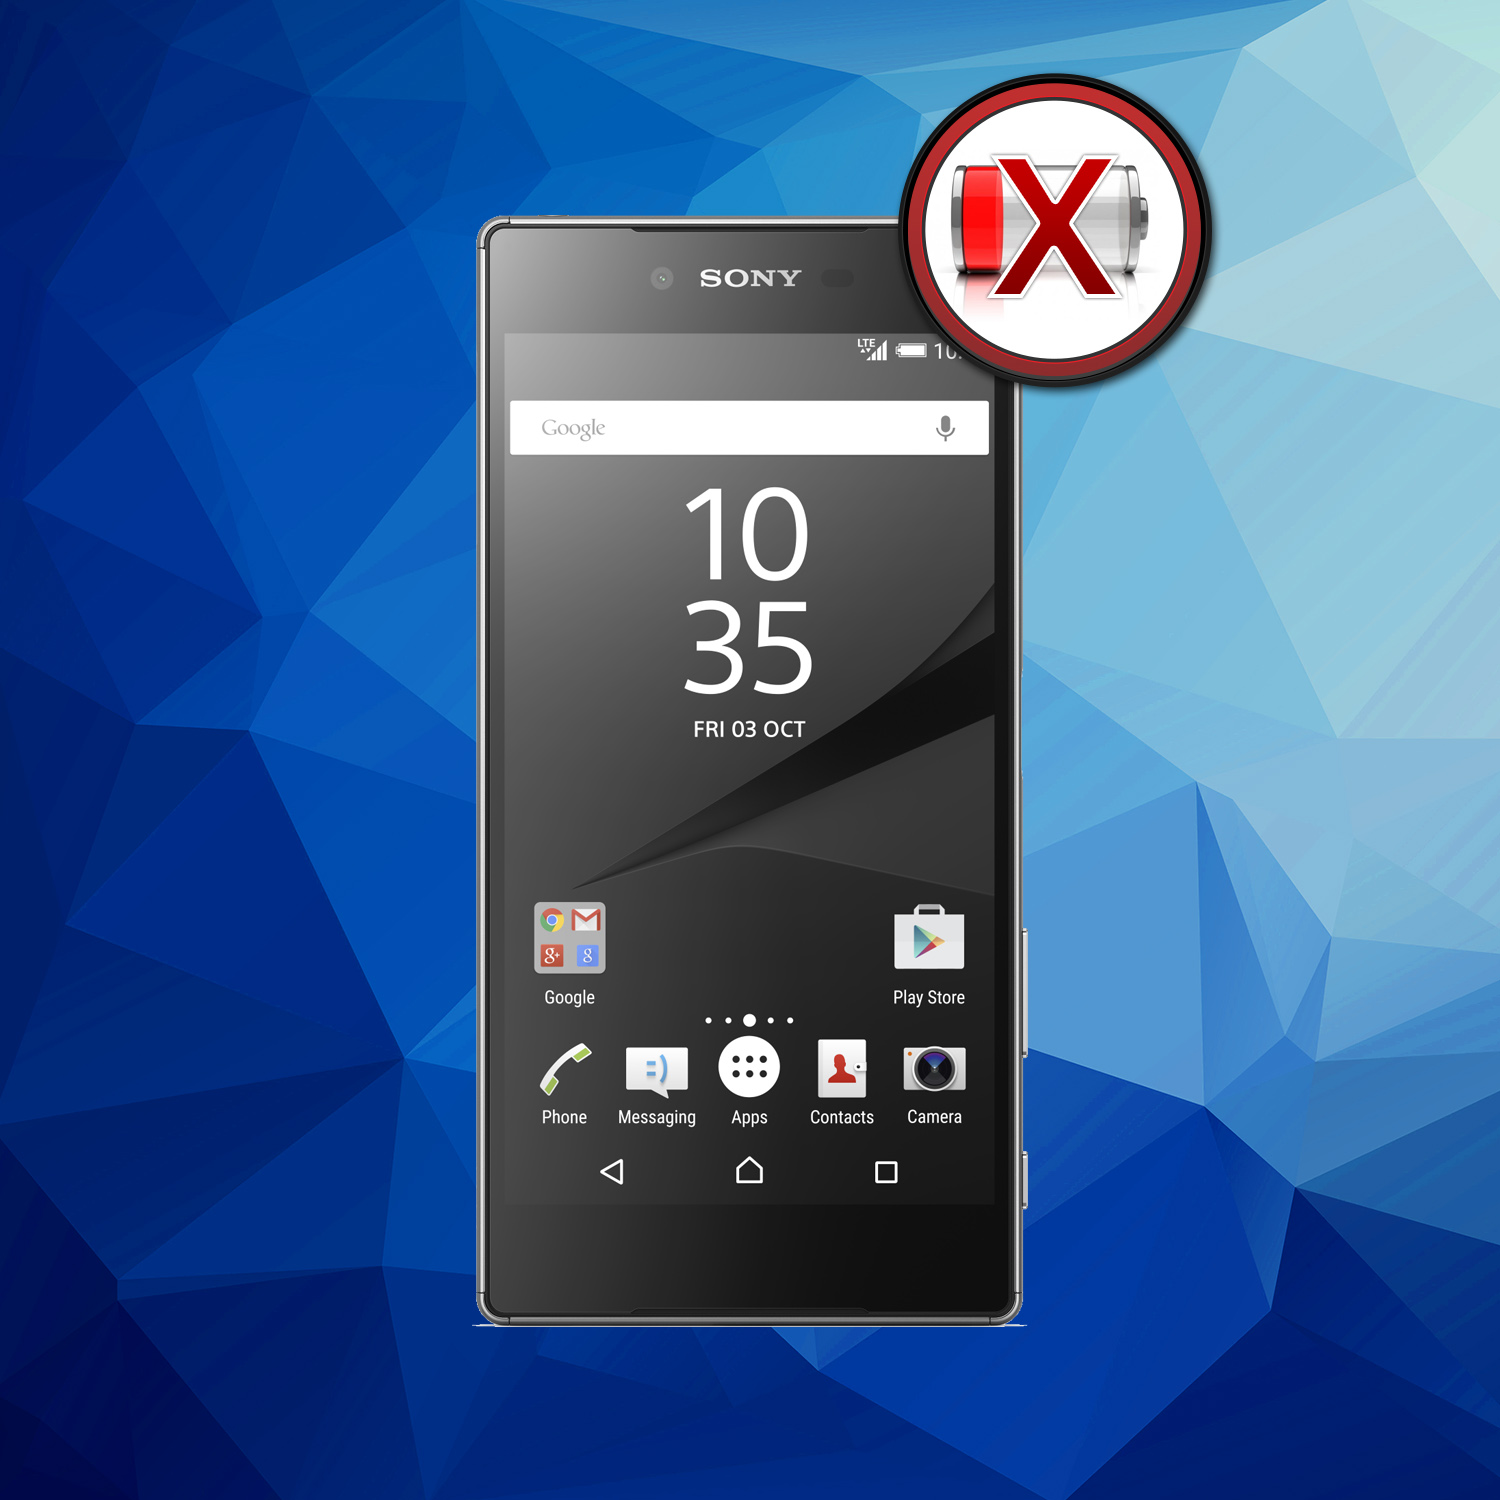 sony xperia z1 compact akku wechsel edv repair. Black Bedroom Furniture Sets. Home Design Ideas